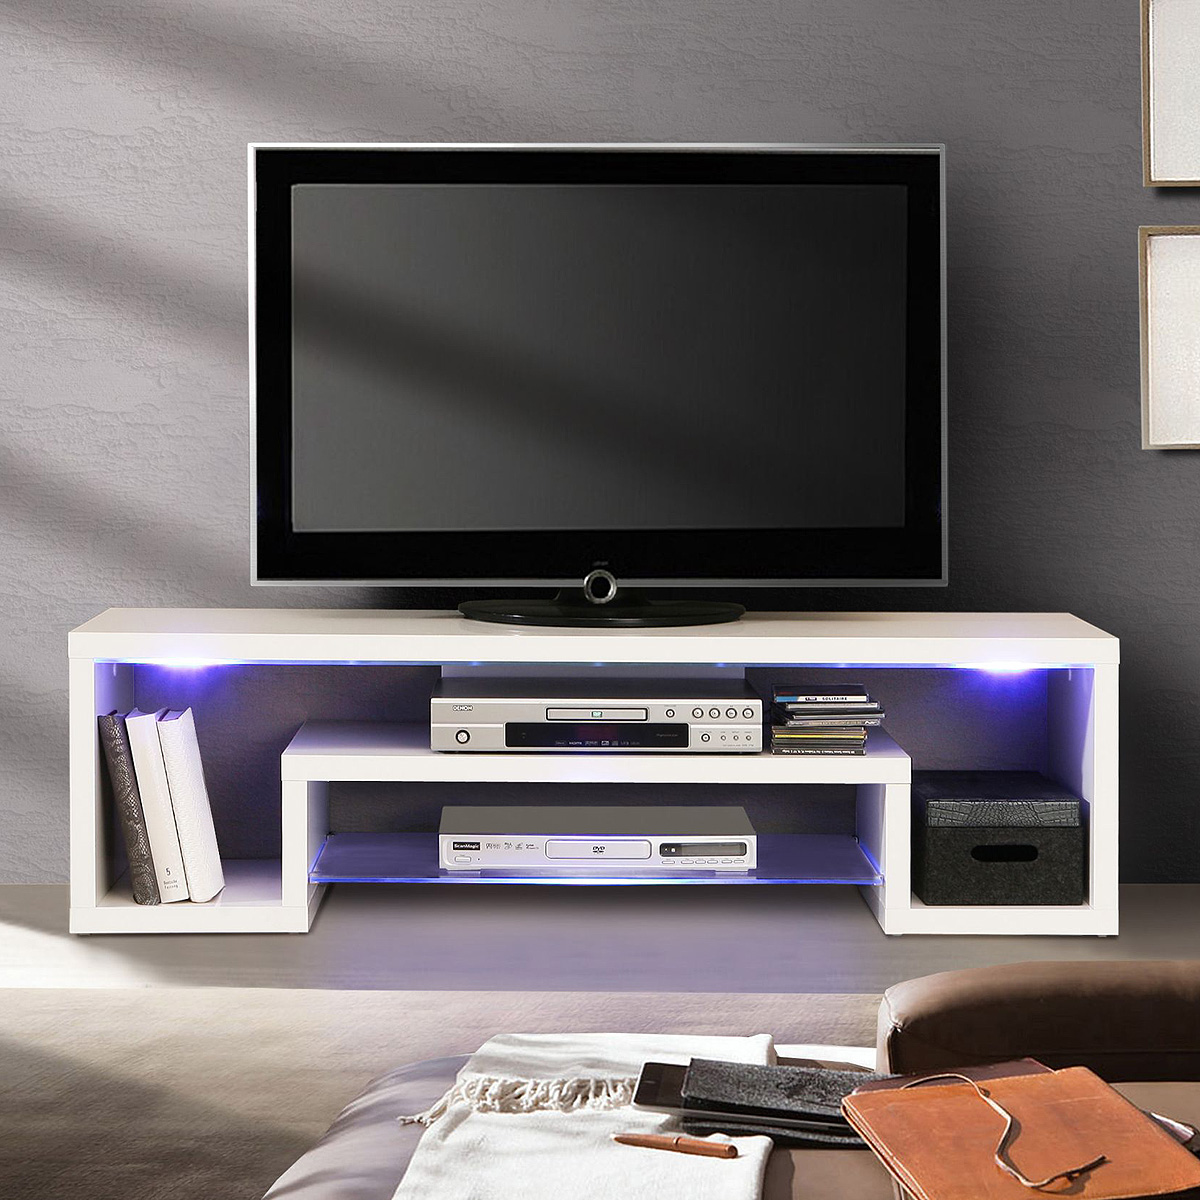 Tv Bord Led Tv Board Mit Led Beleuchtung Pictures To Pin On  # Porta Fernsehschrank